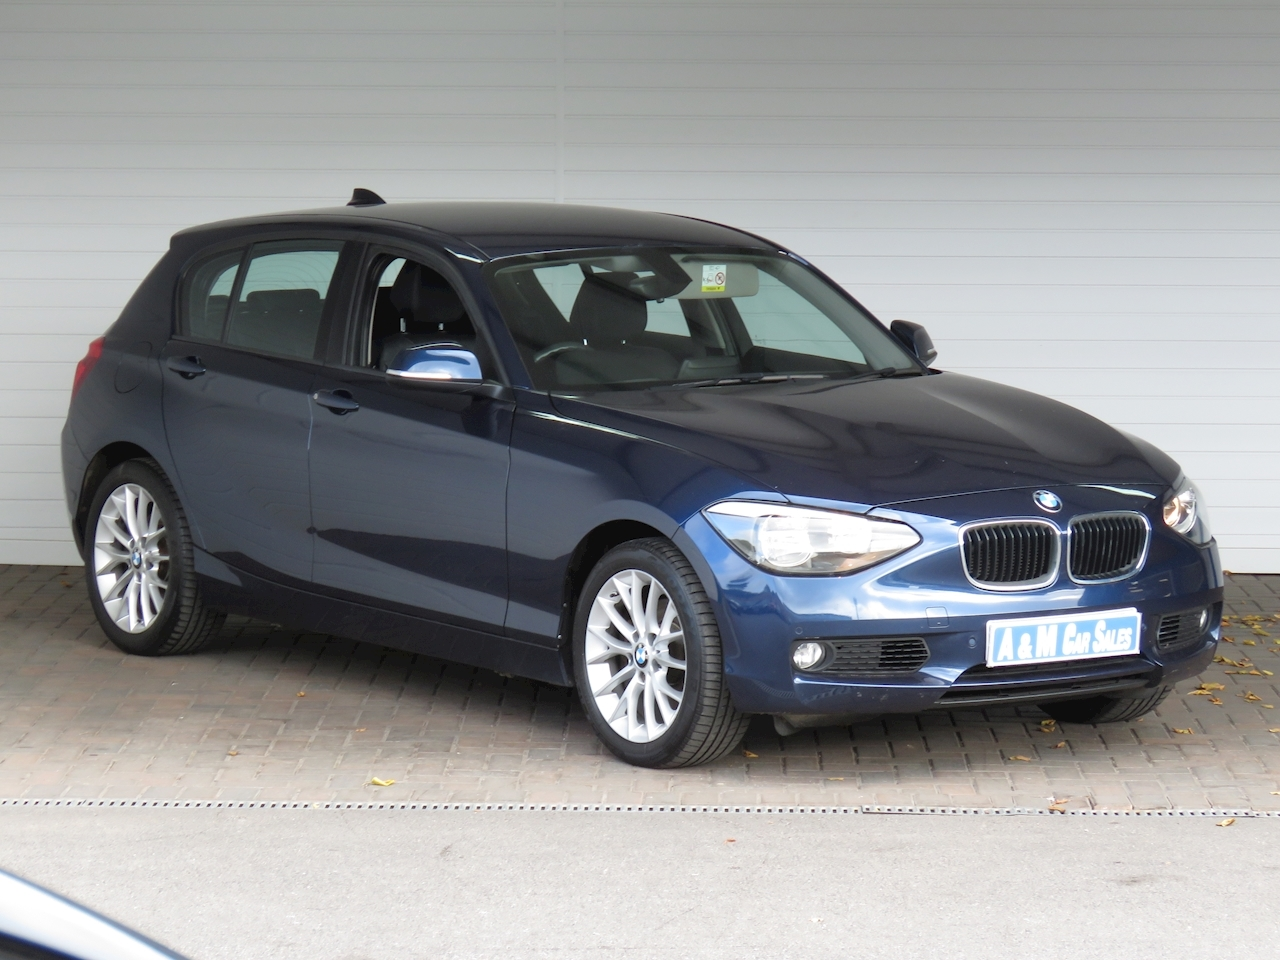 BMW 1 Series 120D Xdrive Se Hatchback 2.0 Manual Diesel